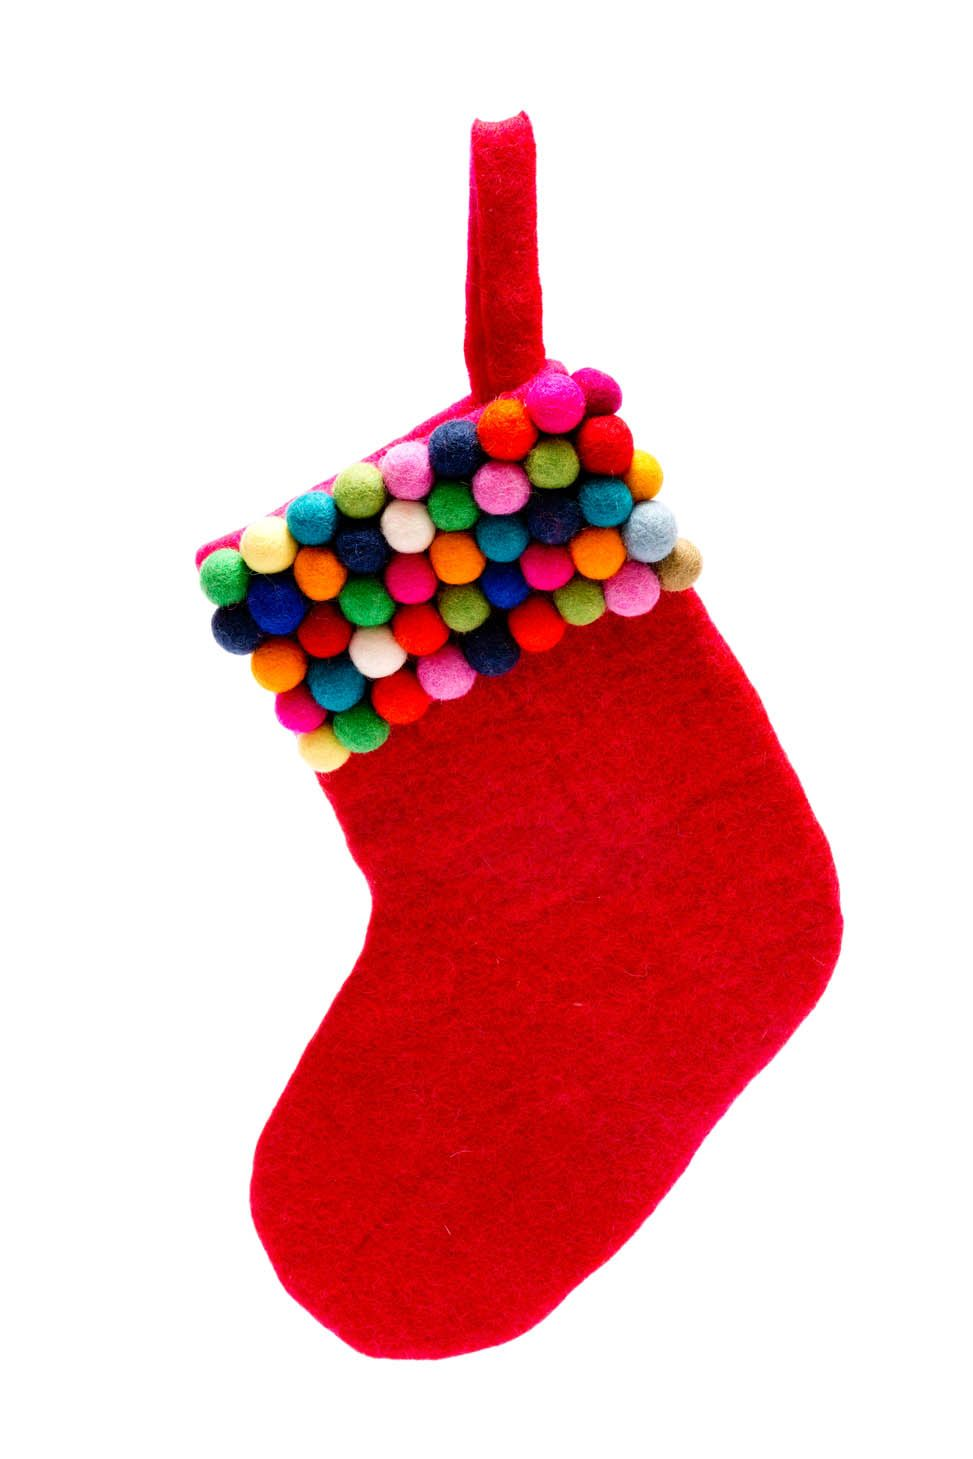 This hand made felt stocking co-ordinates with the bauble wreath